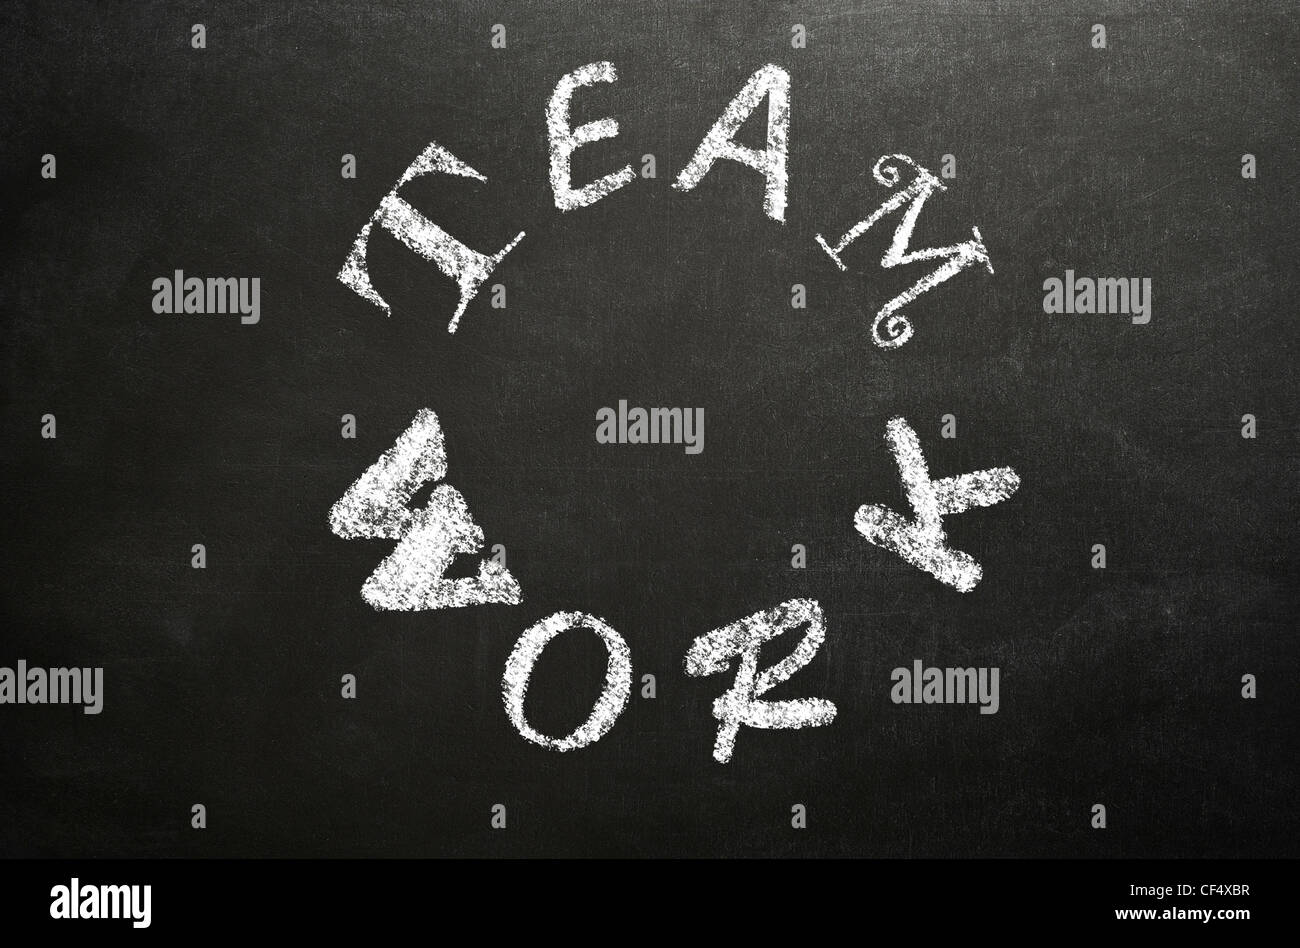 The word 'TEAMWORK' written in a circle in different fonts on a blackboard in white chalk - Stock Image